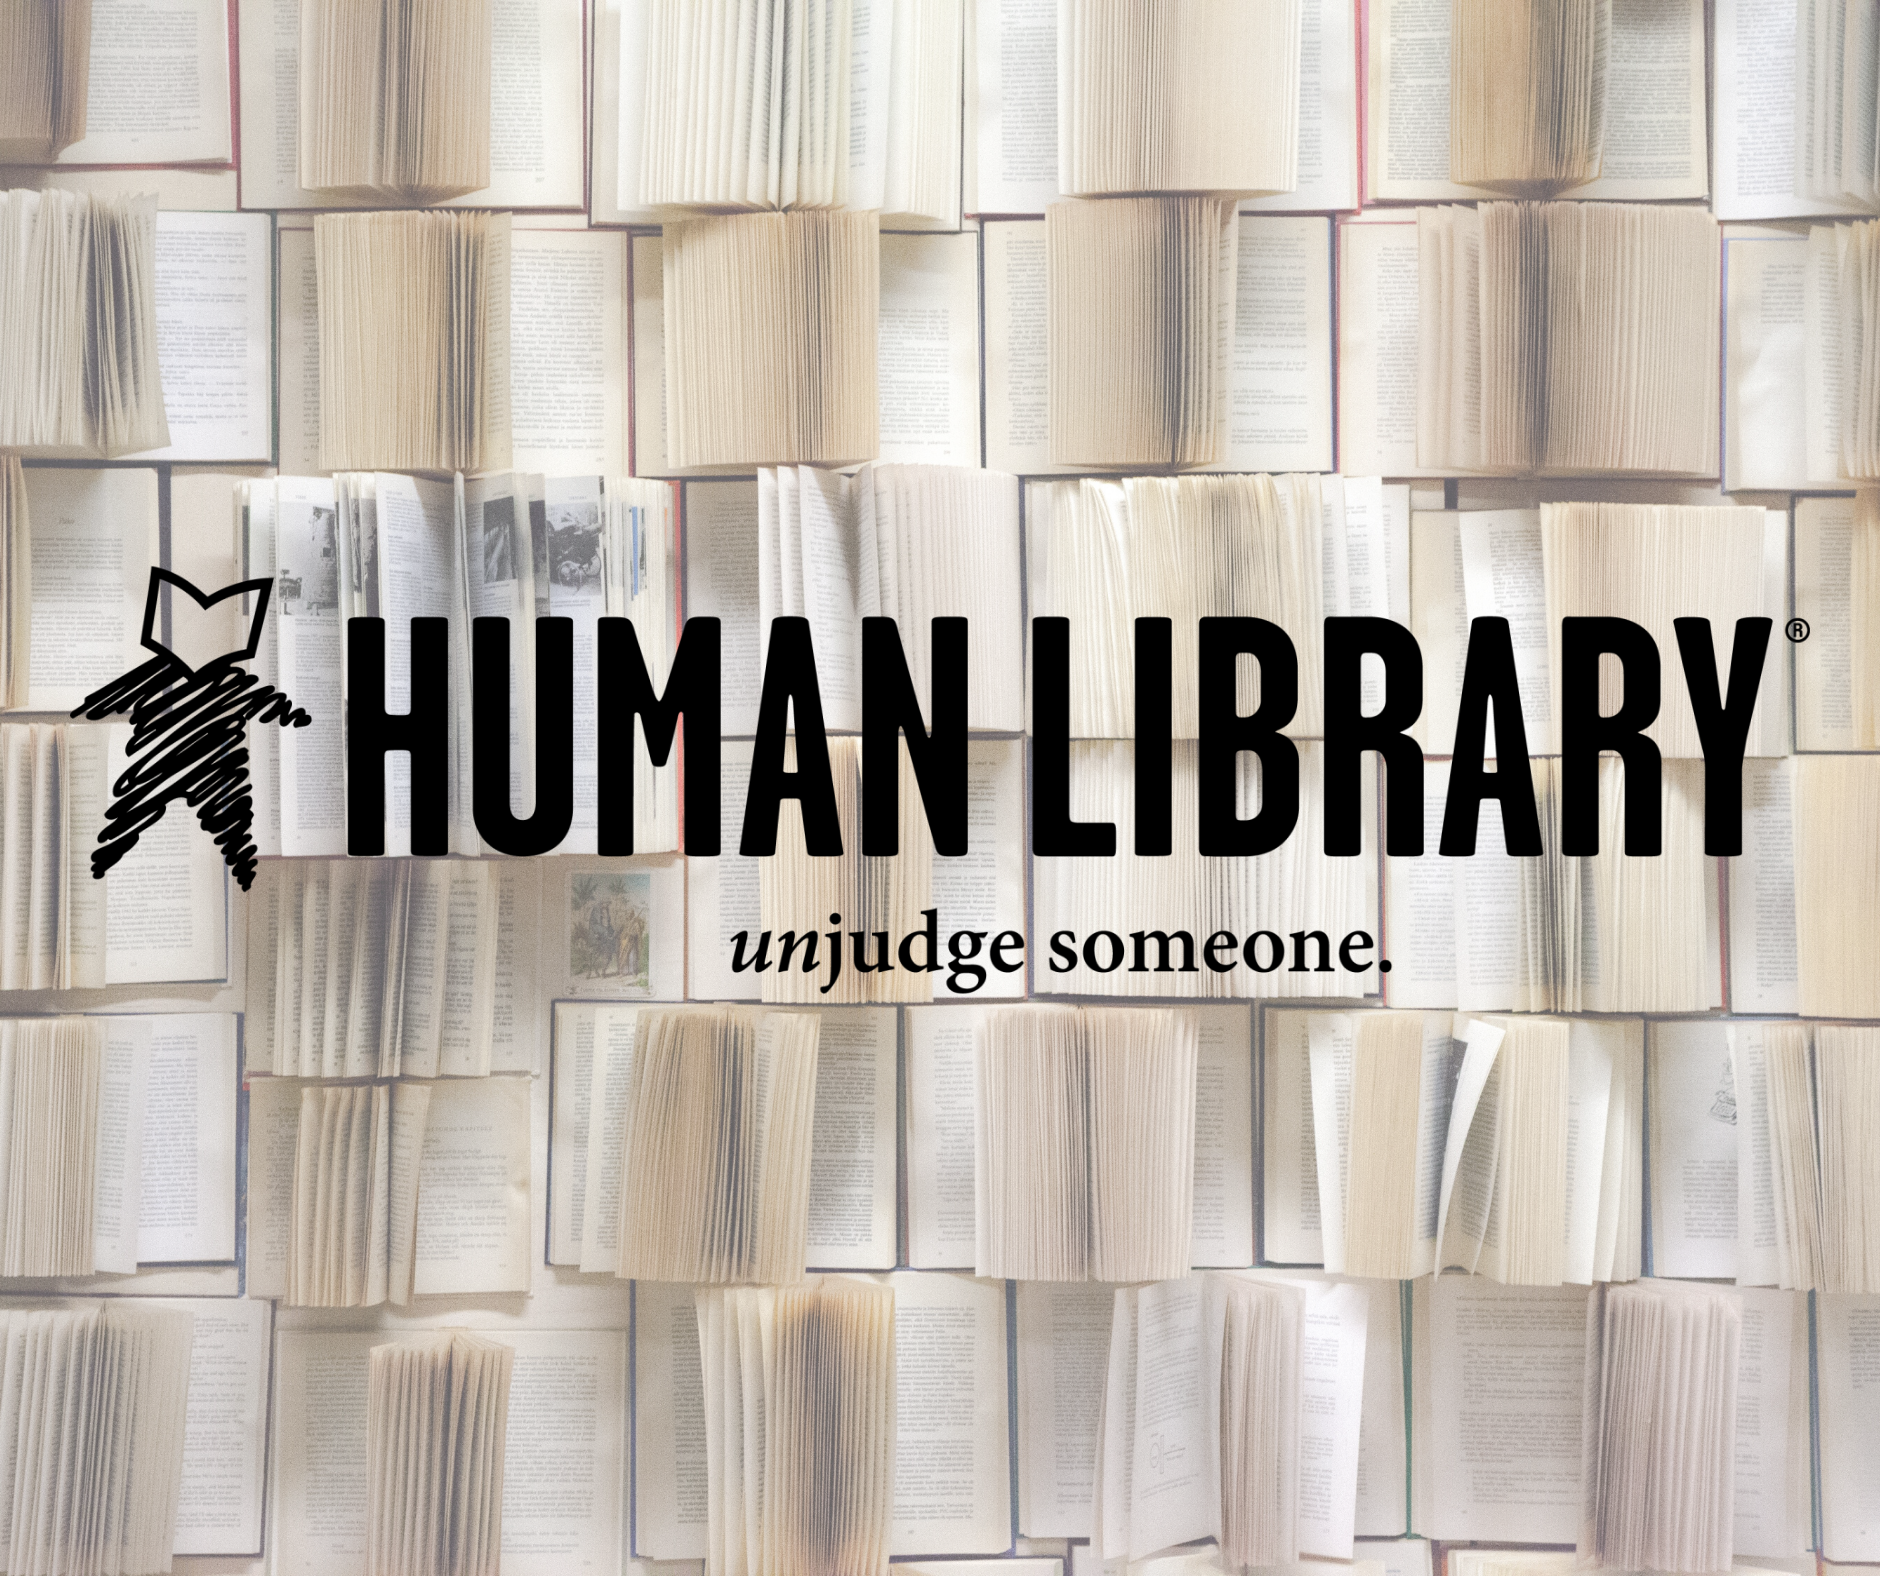 Human library logo over book page background